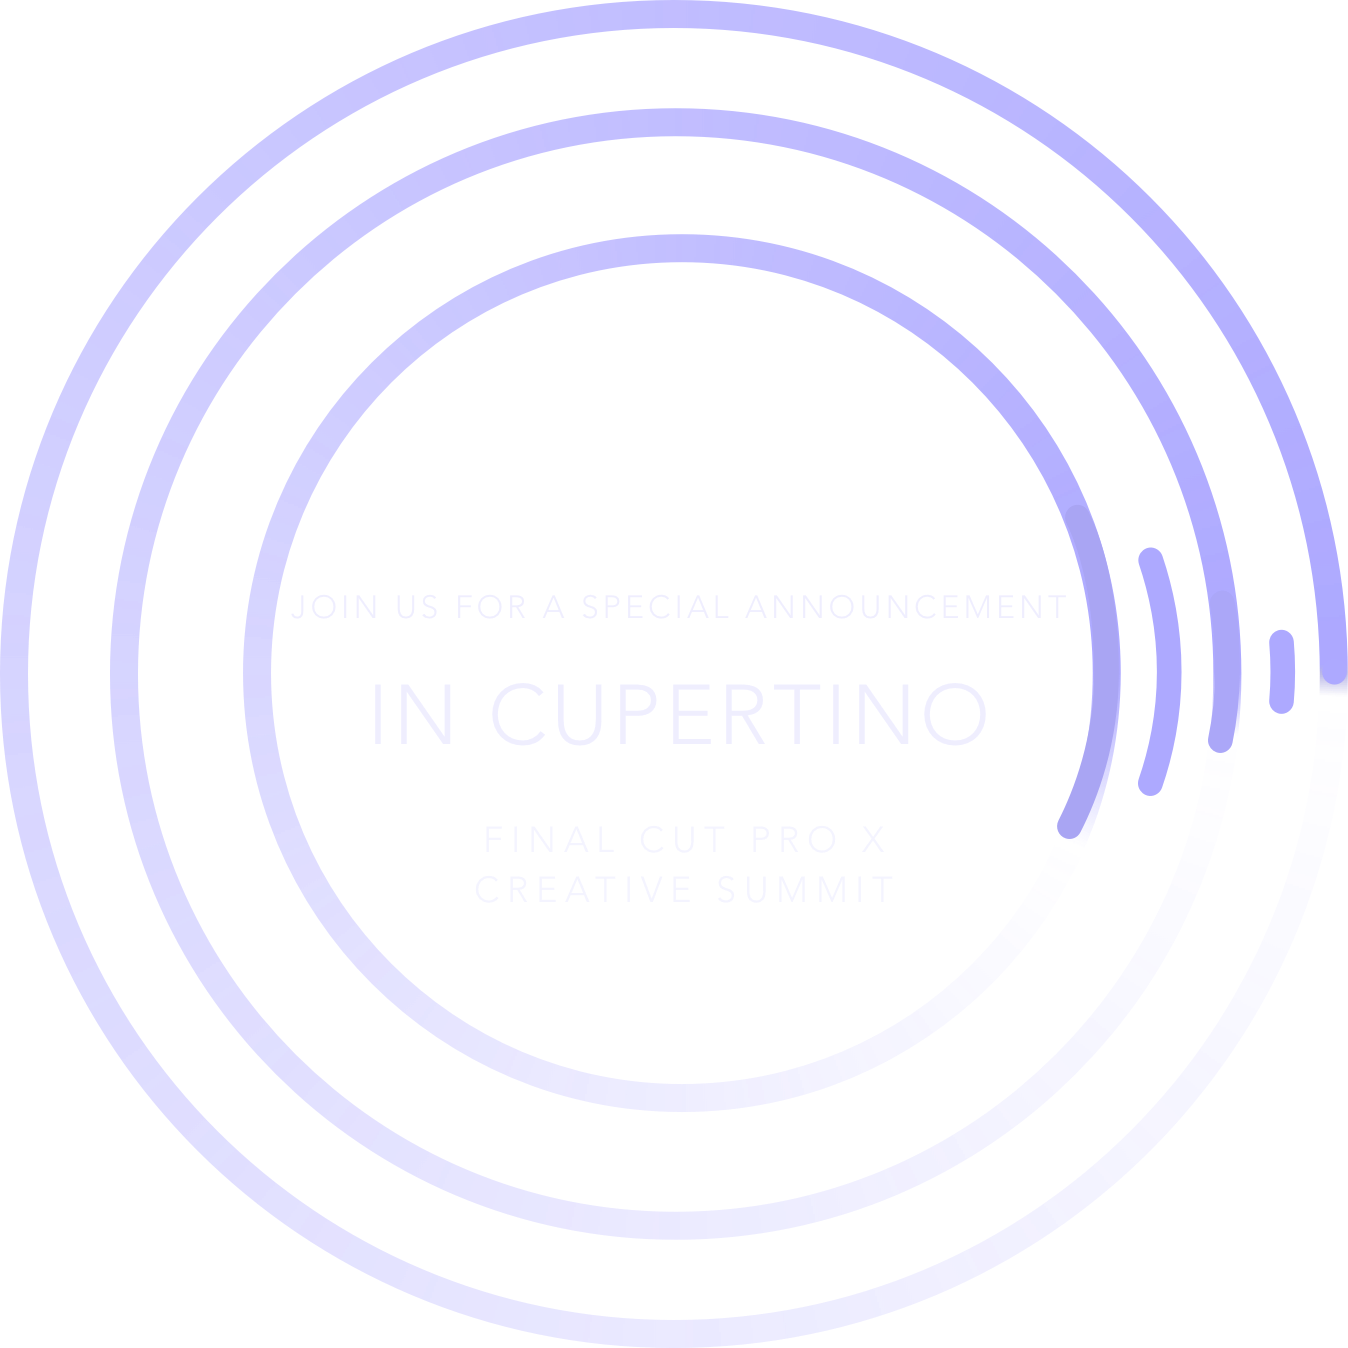 Special Announcement in Cupertino